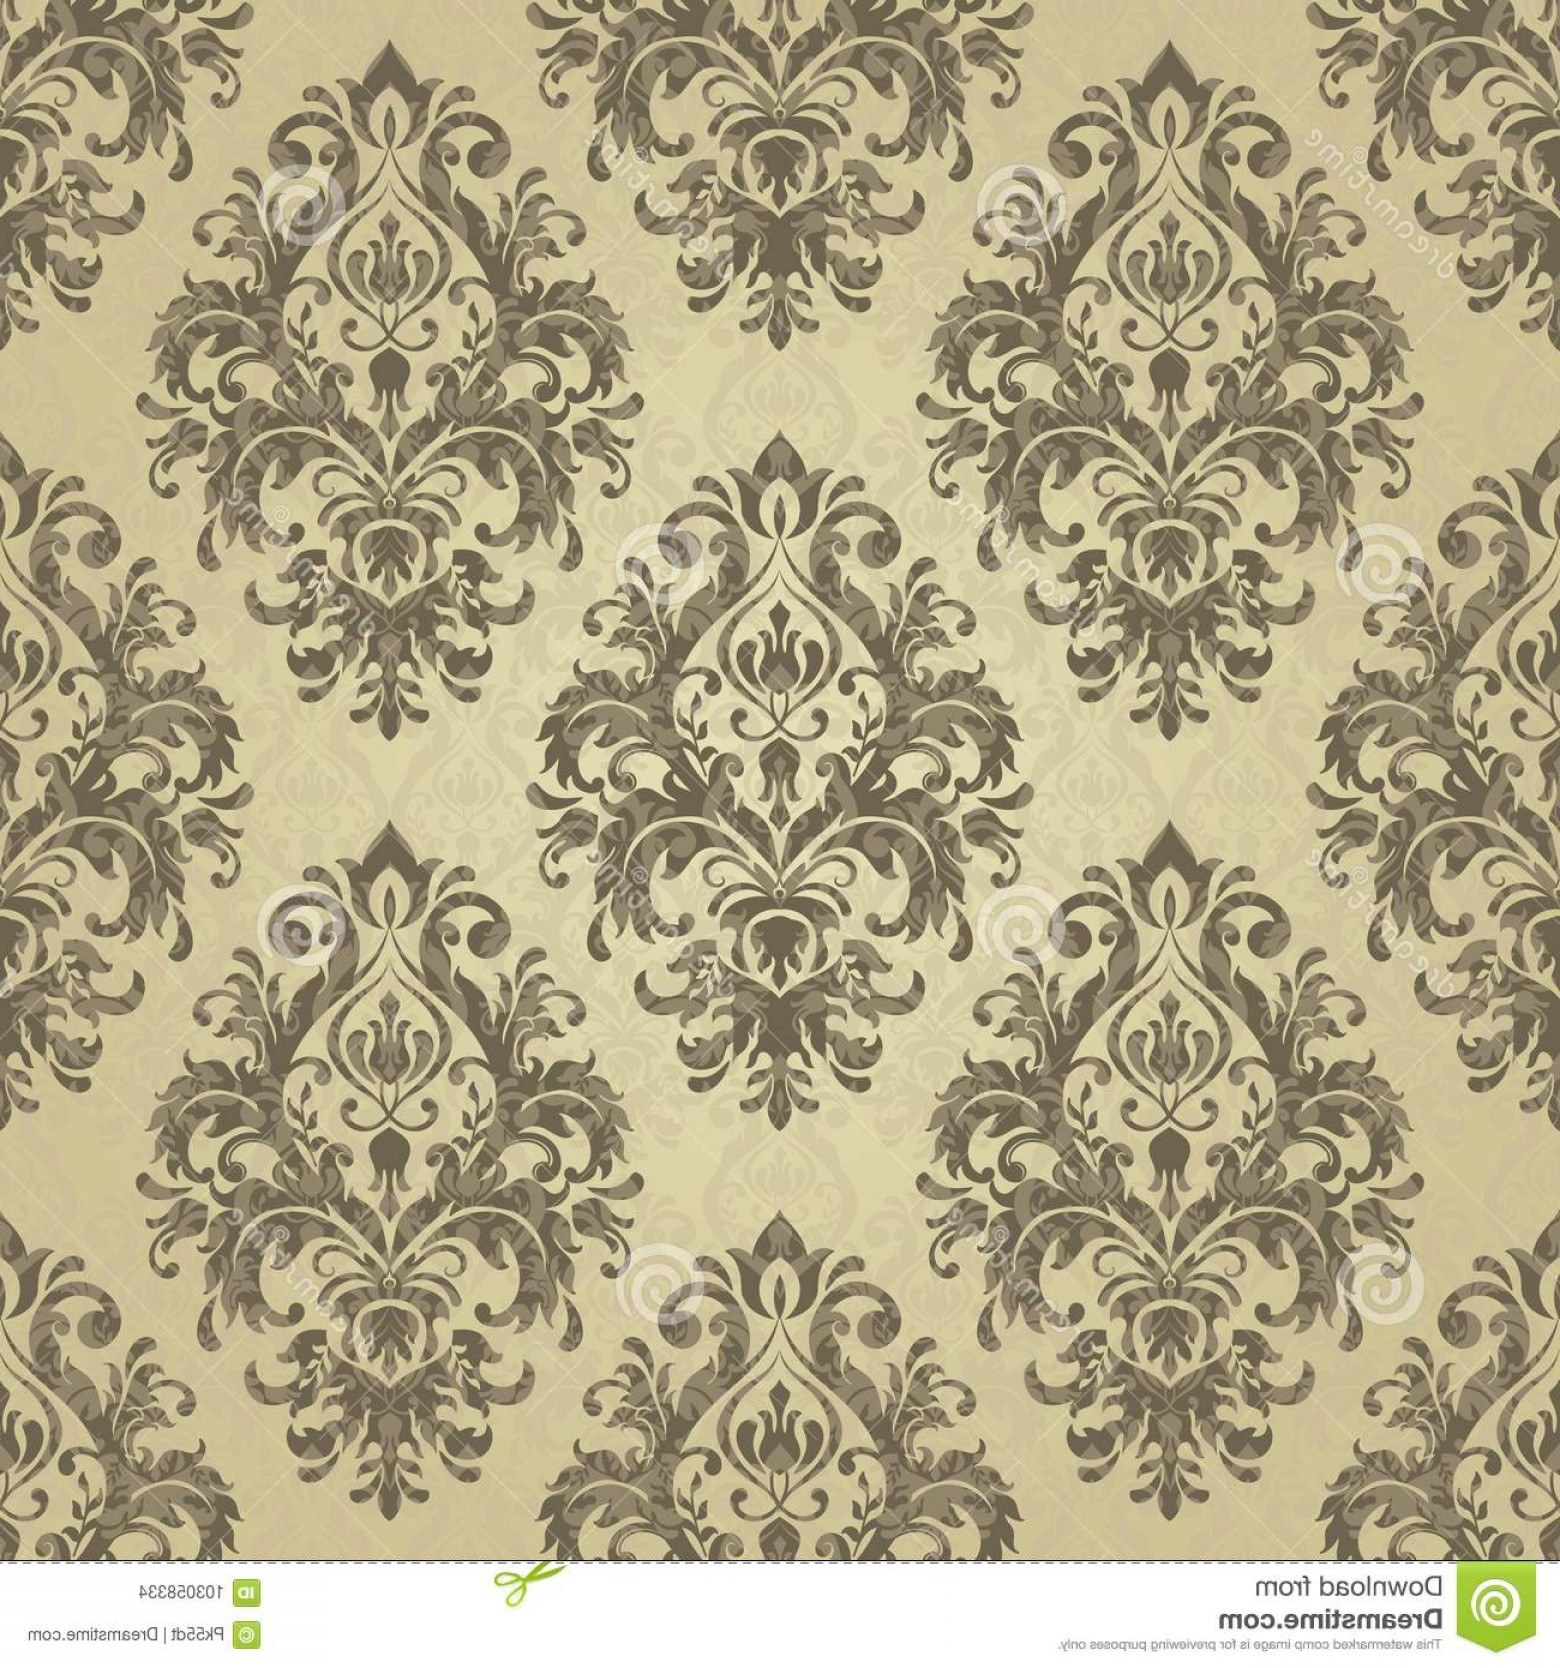 Distressed Damask Vintage Vector Floral Pattern Wallpaper Baroque Gold Color Seamless Background Image